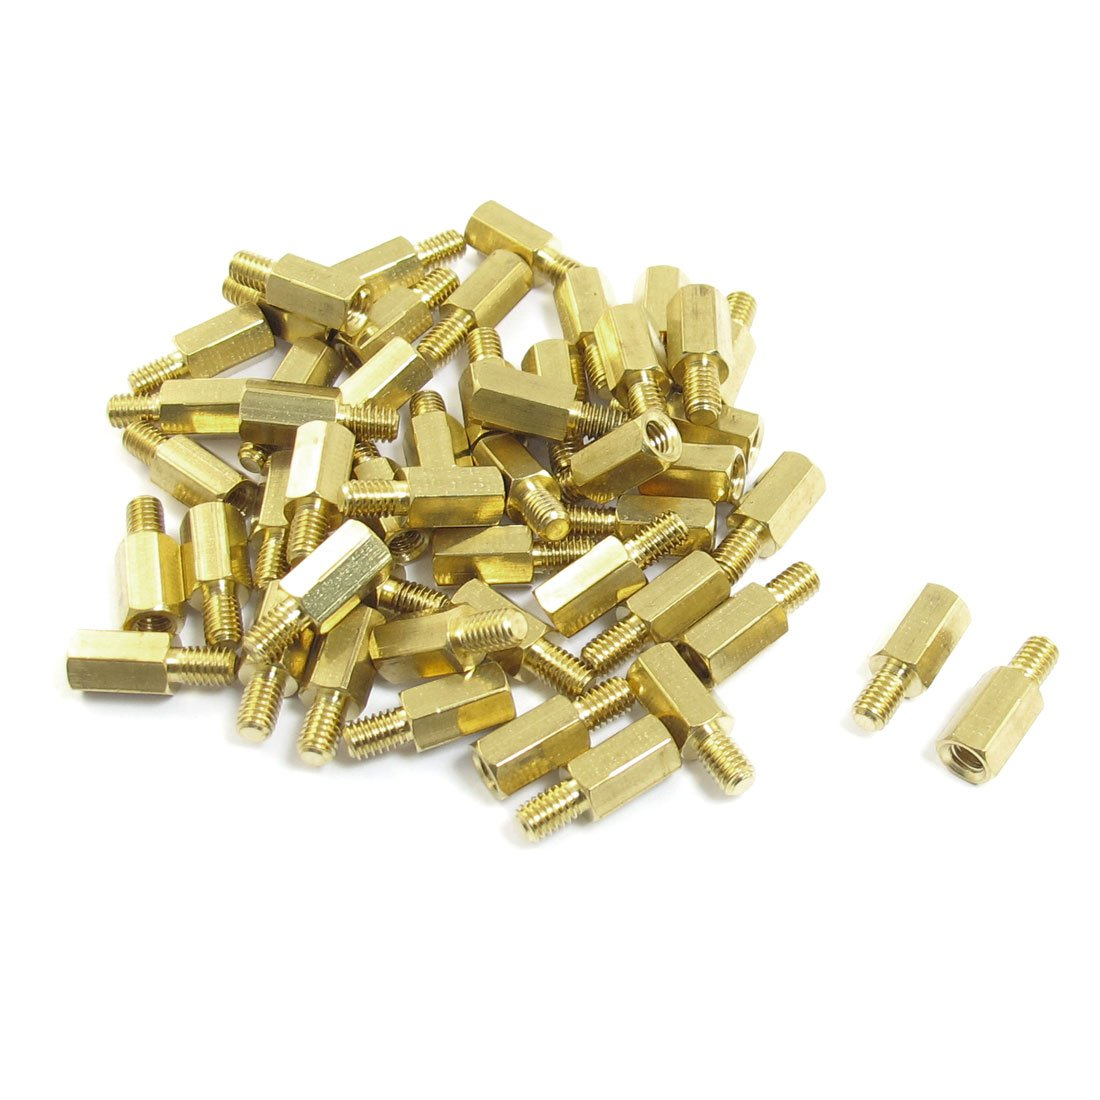 uxcell 50 Pcs Male to Female Threaded Hexagonal Standoff Spacer M4x10mmx16mm